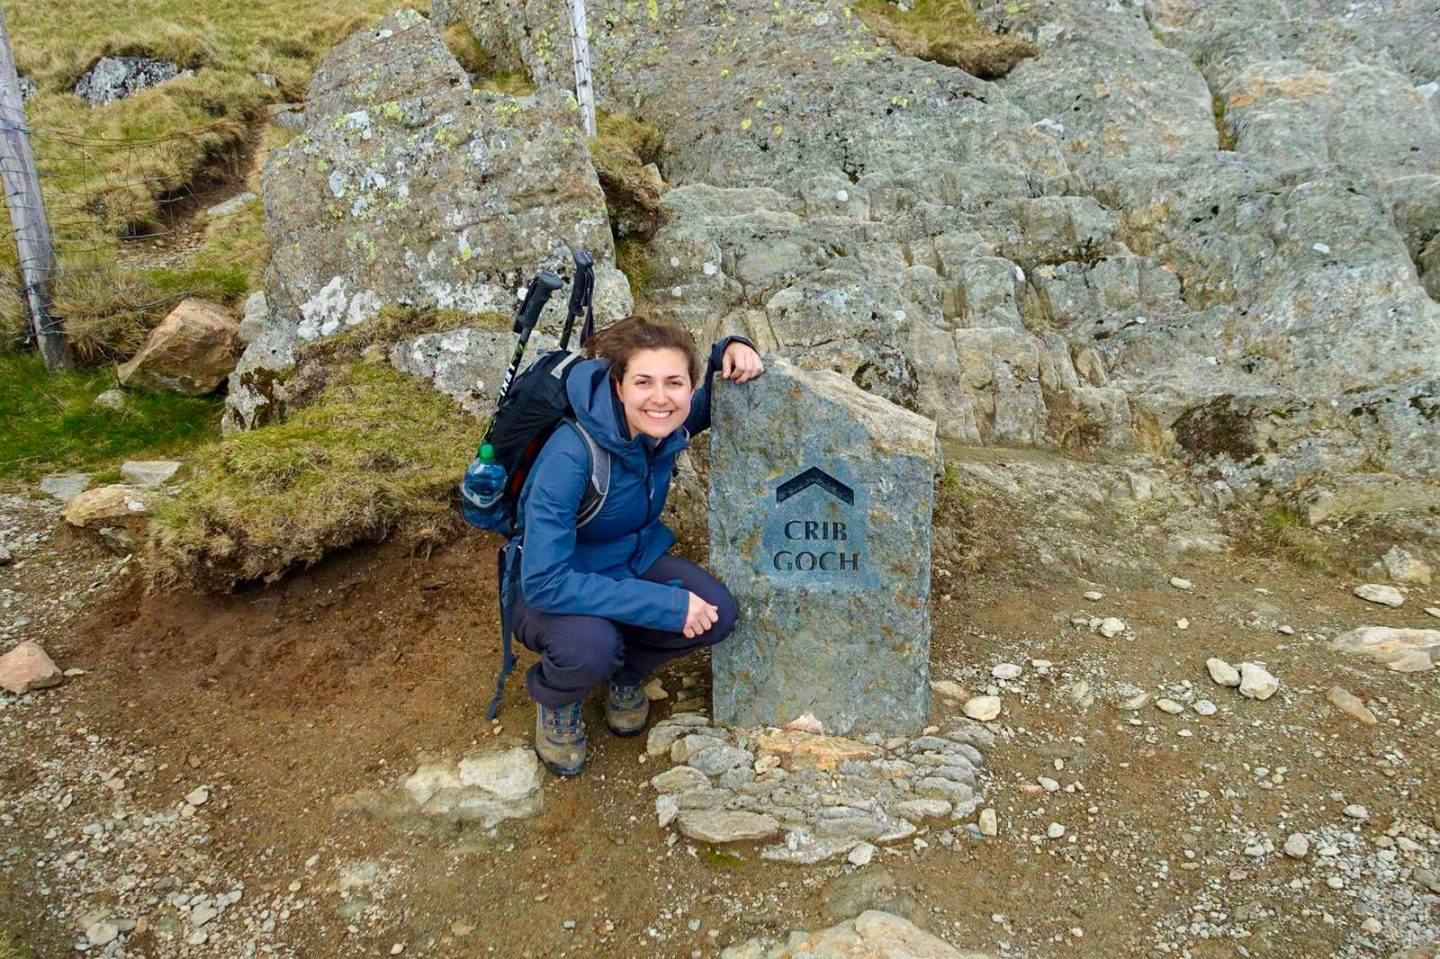 crib goch route up snowdon - Nell crouched next to a stone sign and smiling at the camera